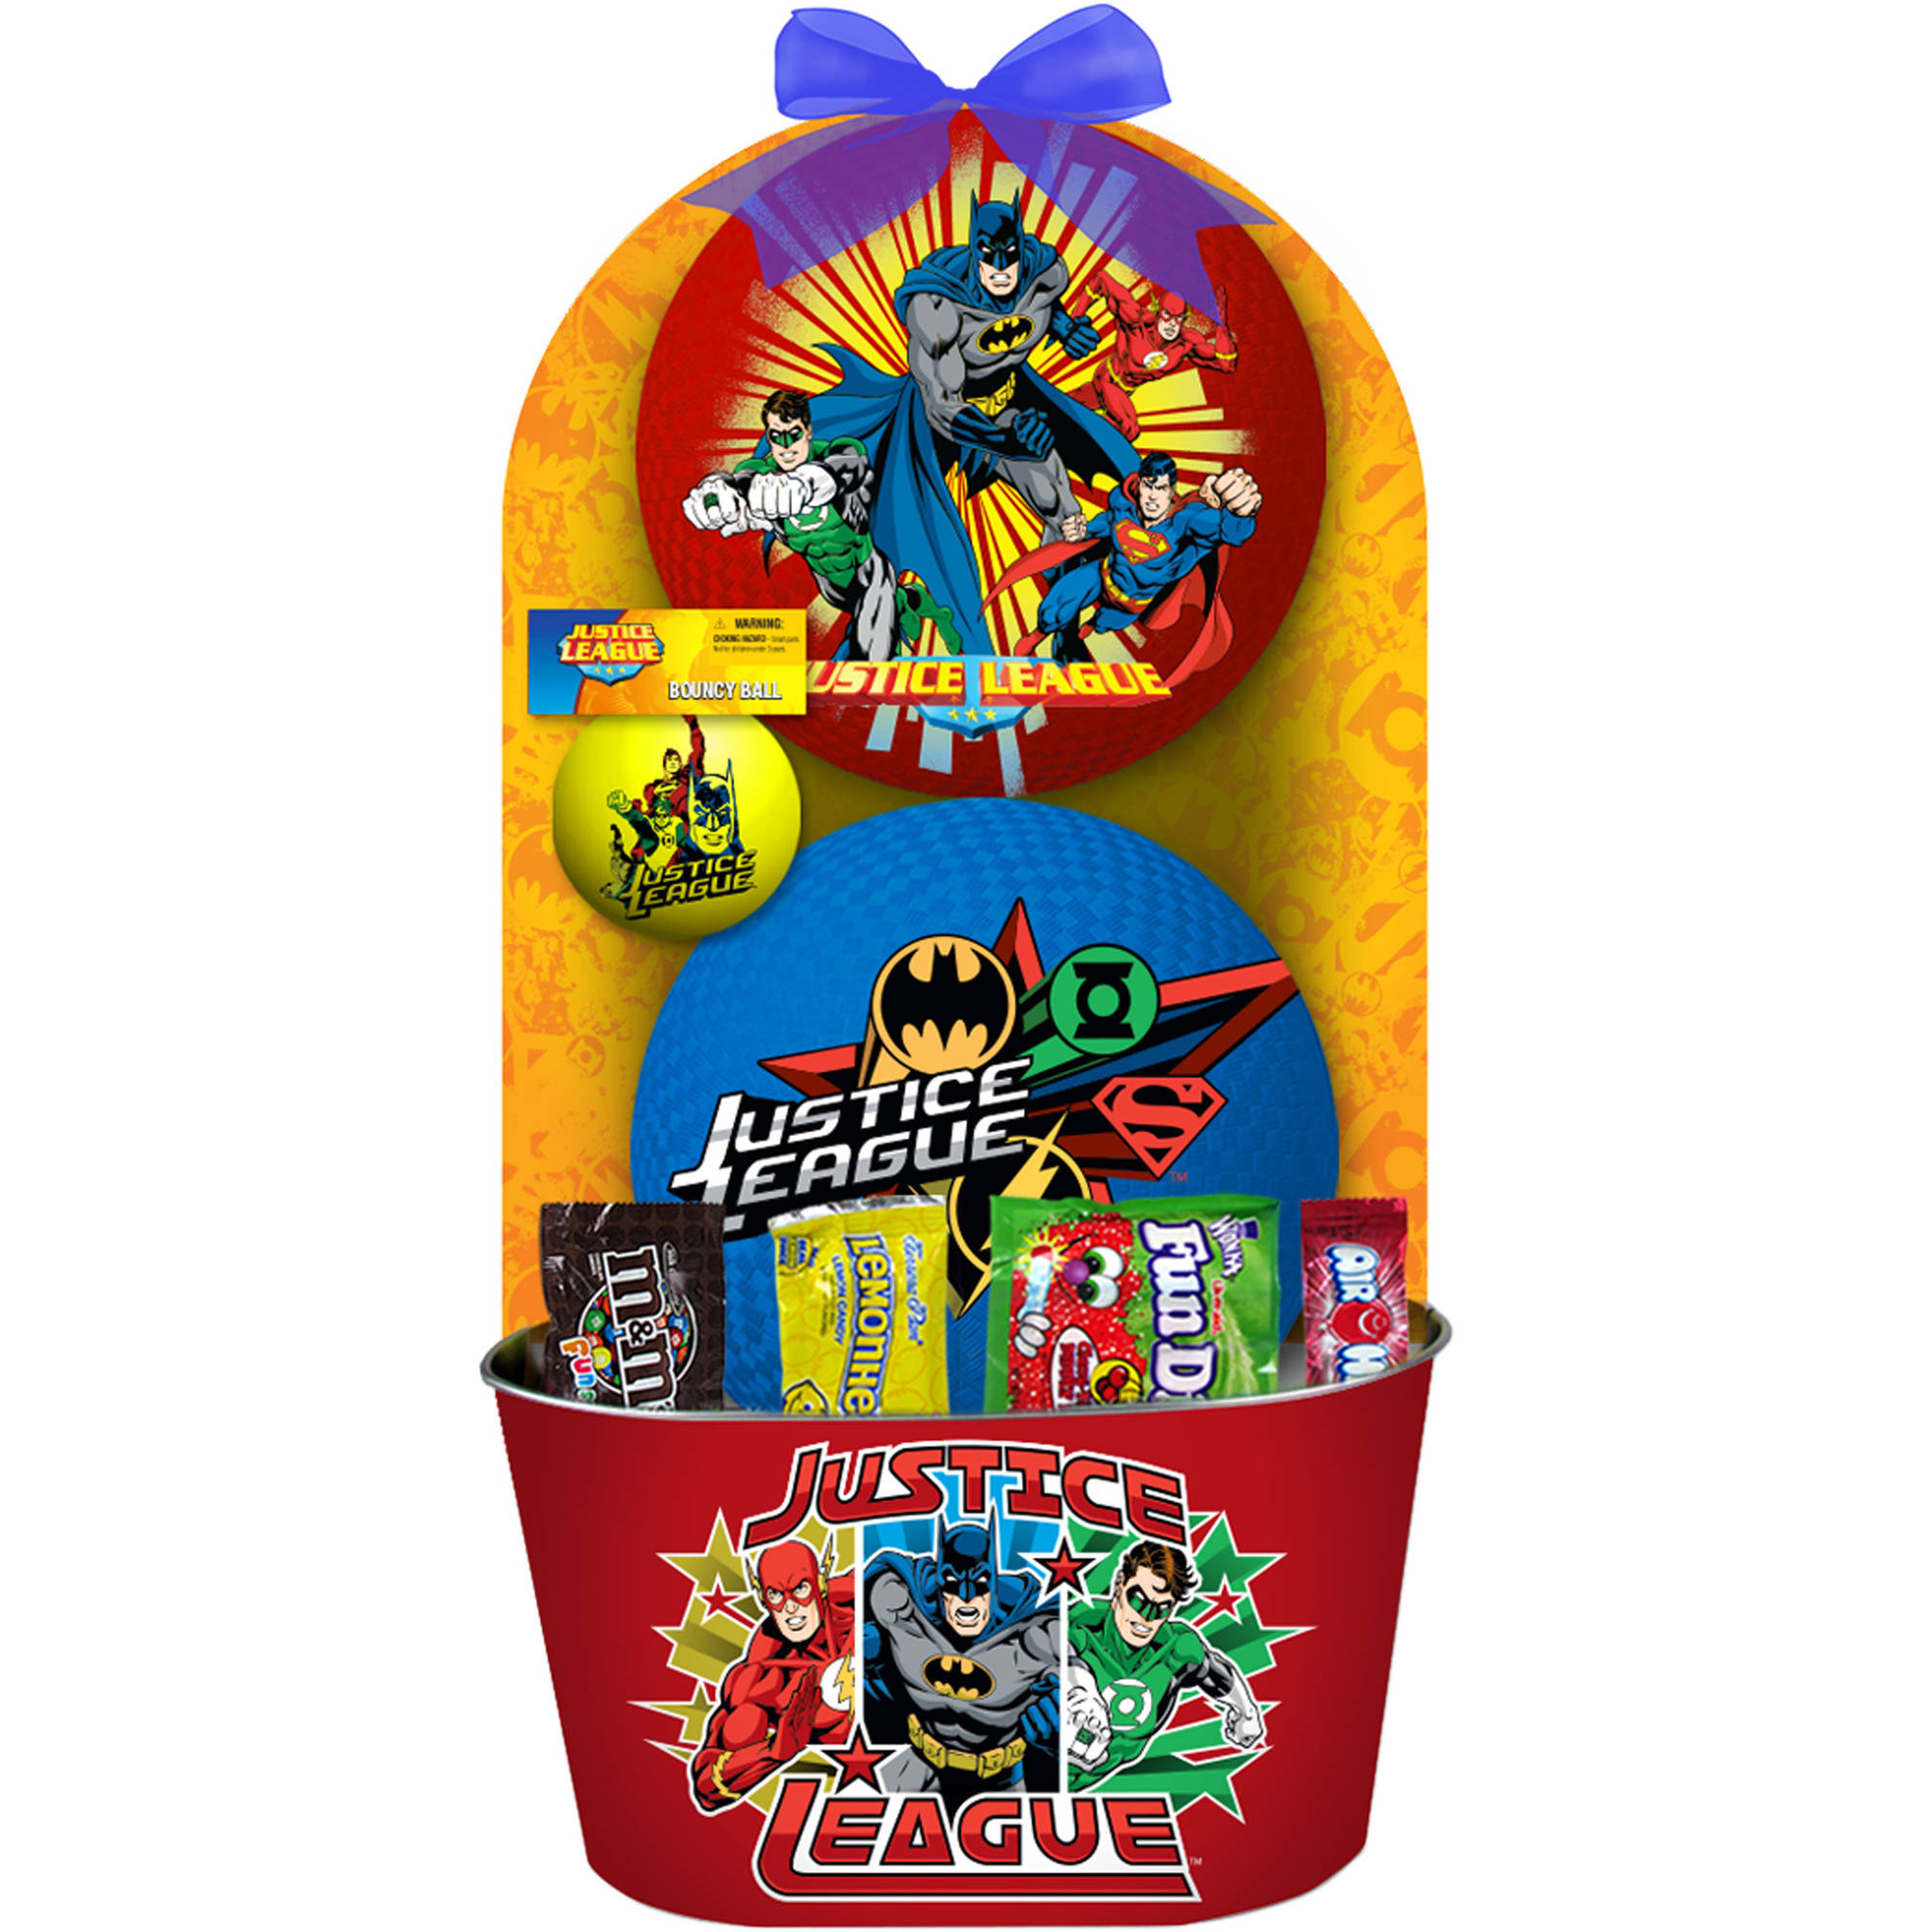 Justice league easter basket 7 pc walmart negle Choice Image